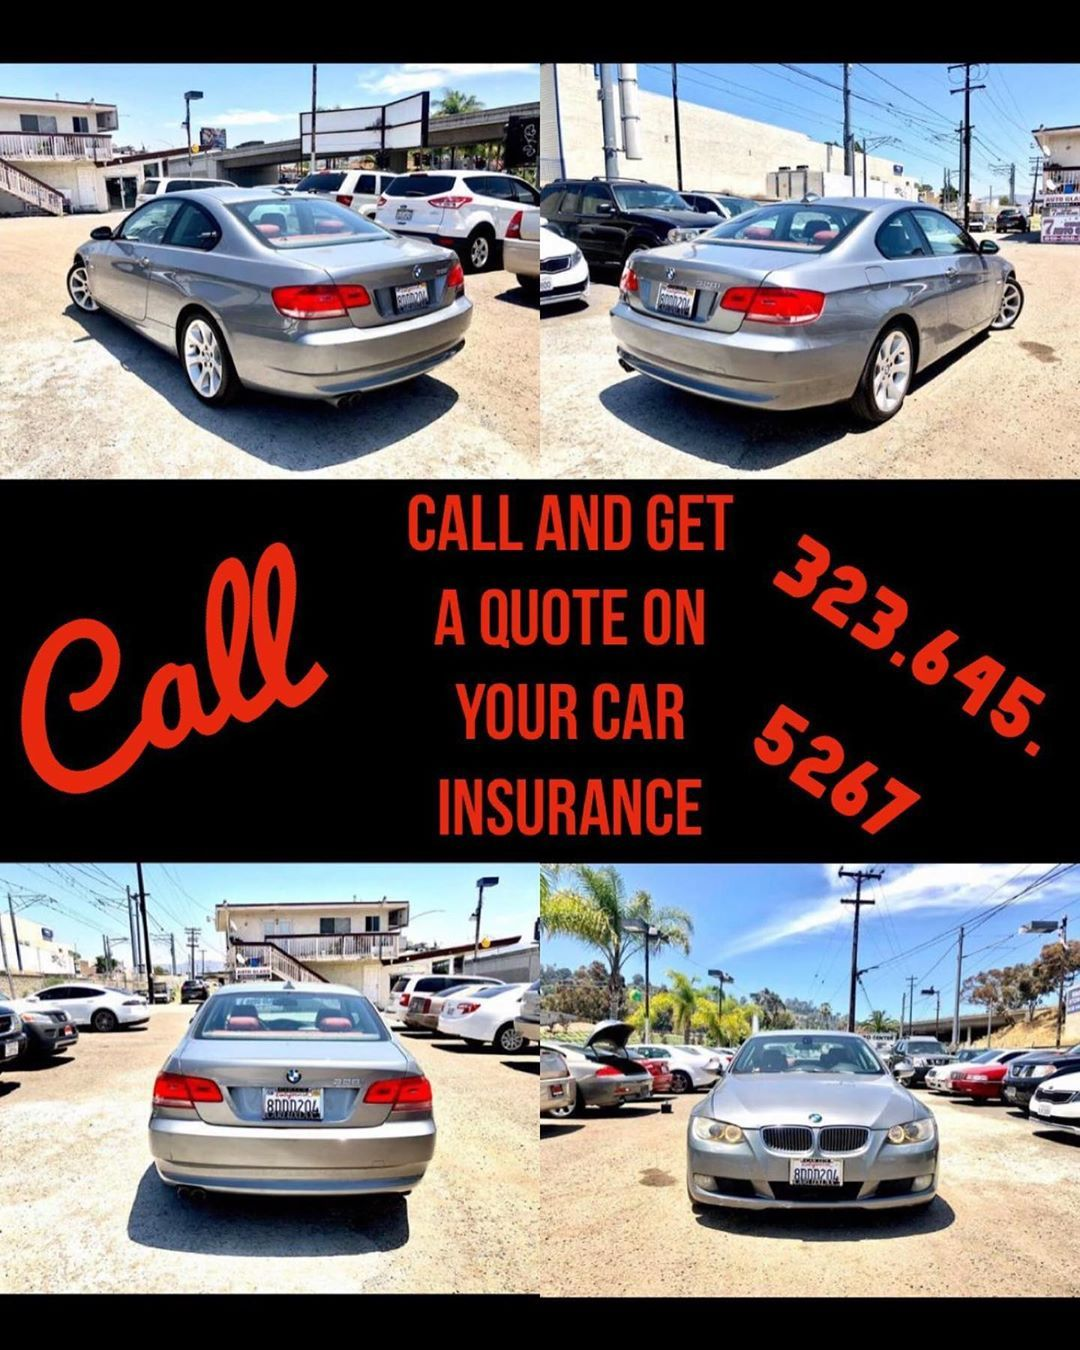 Call And Get A Quote On Your Car Insurance